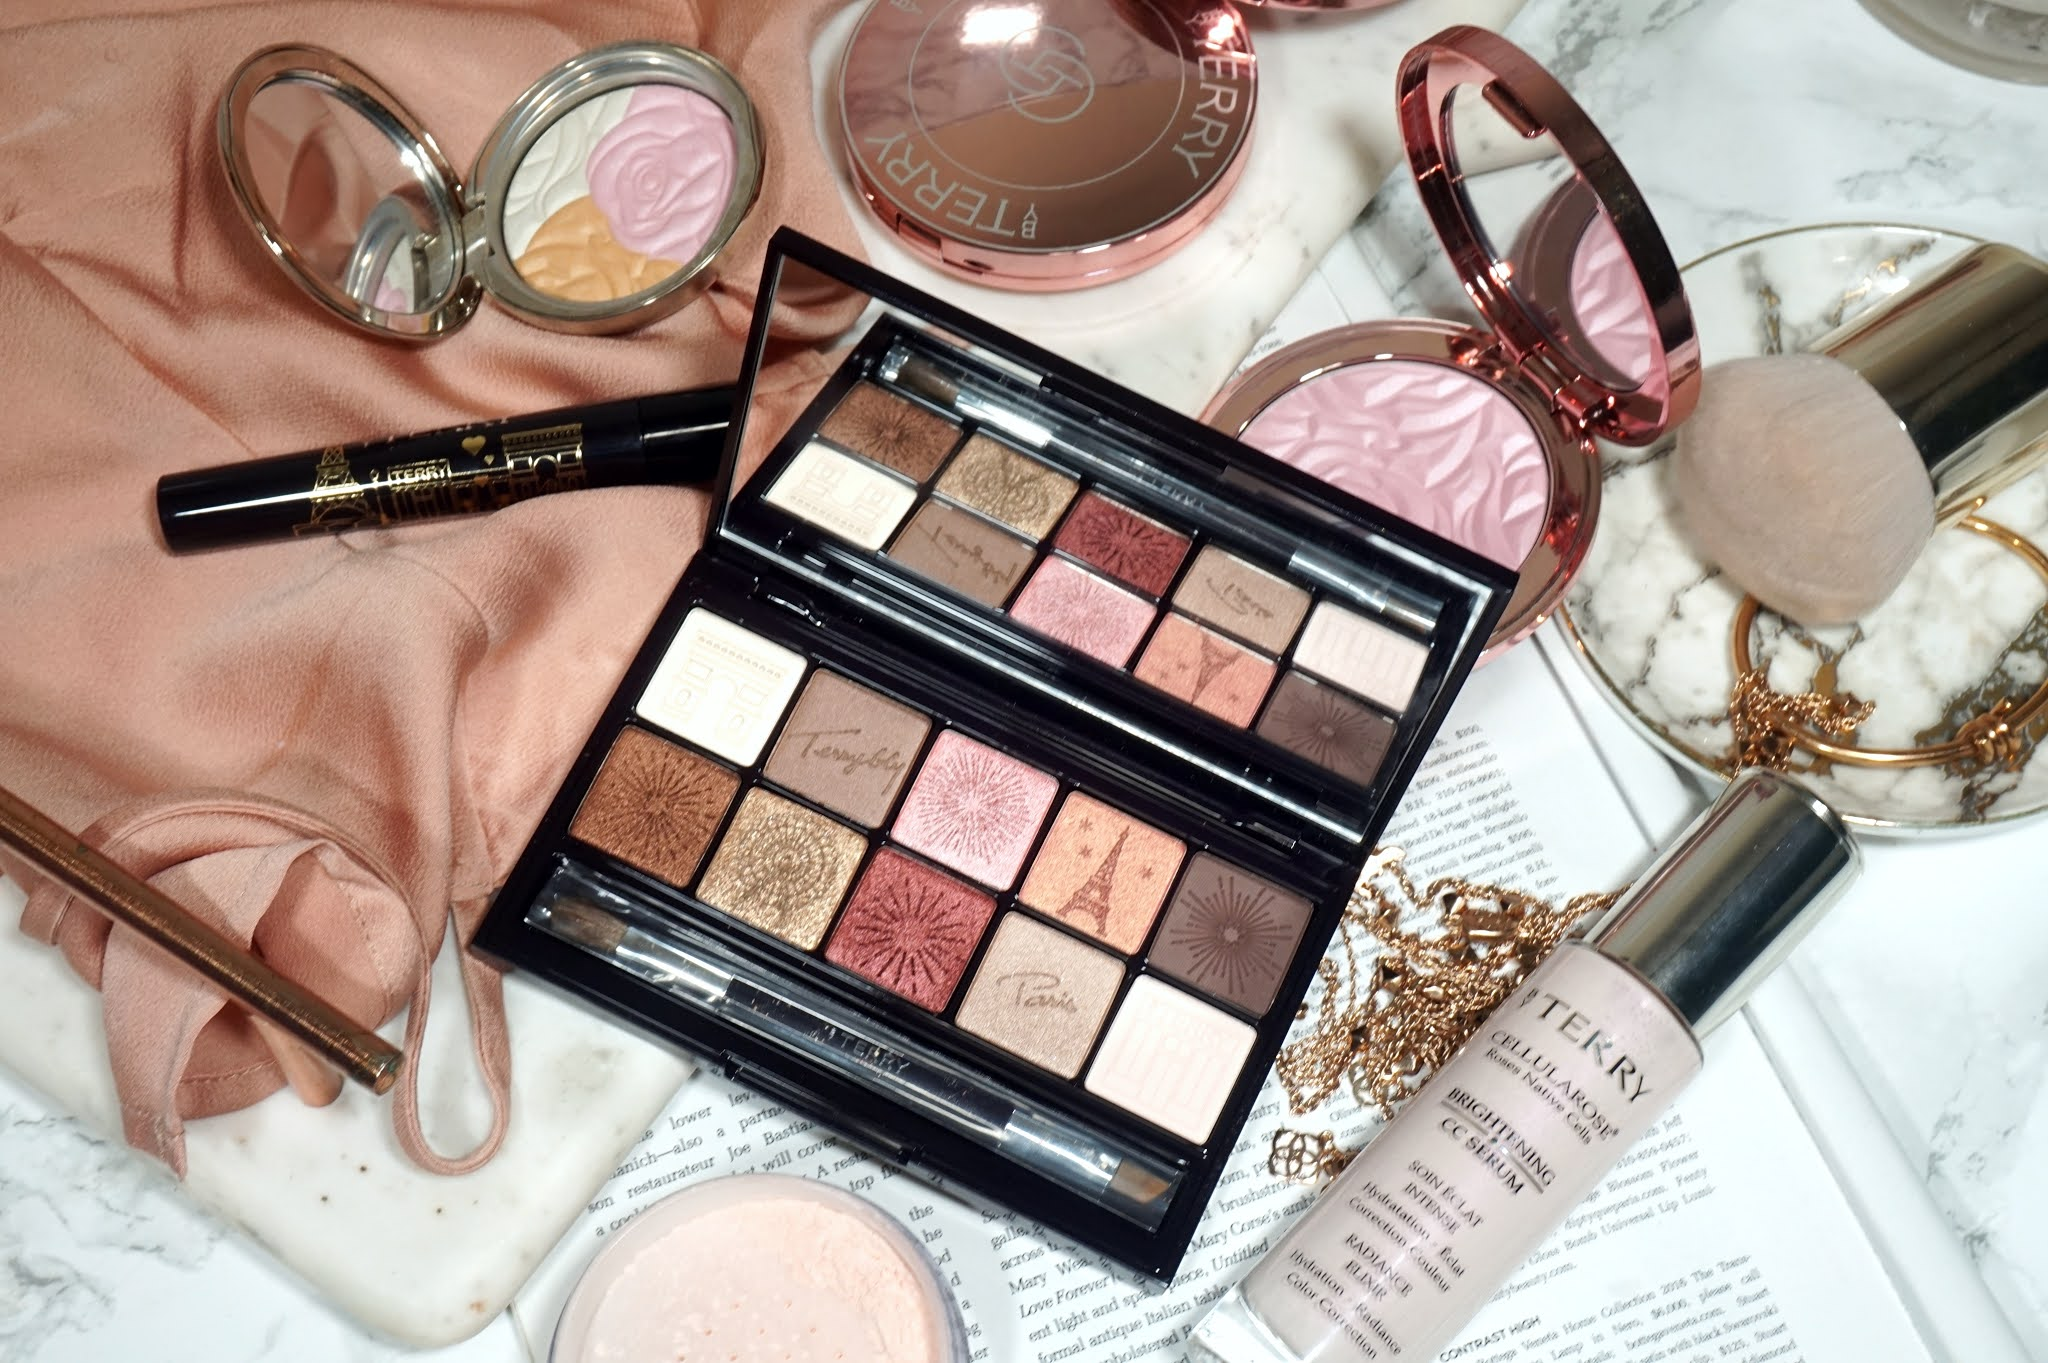 By Terry V.I.P. Expert Palette Paris Mon Amour Review and Swatches